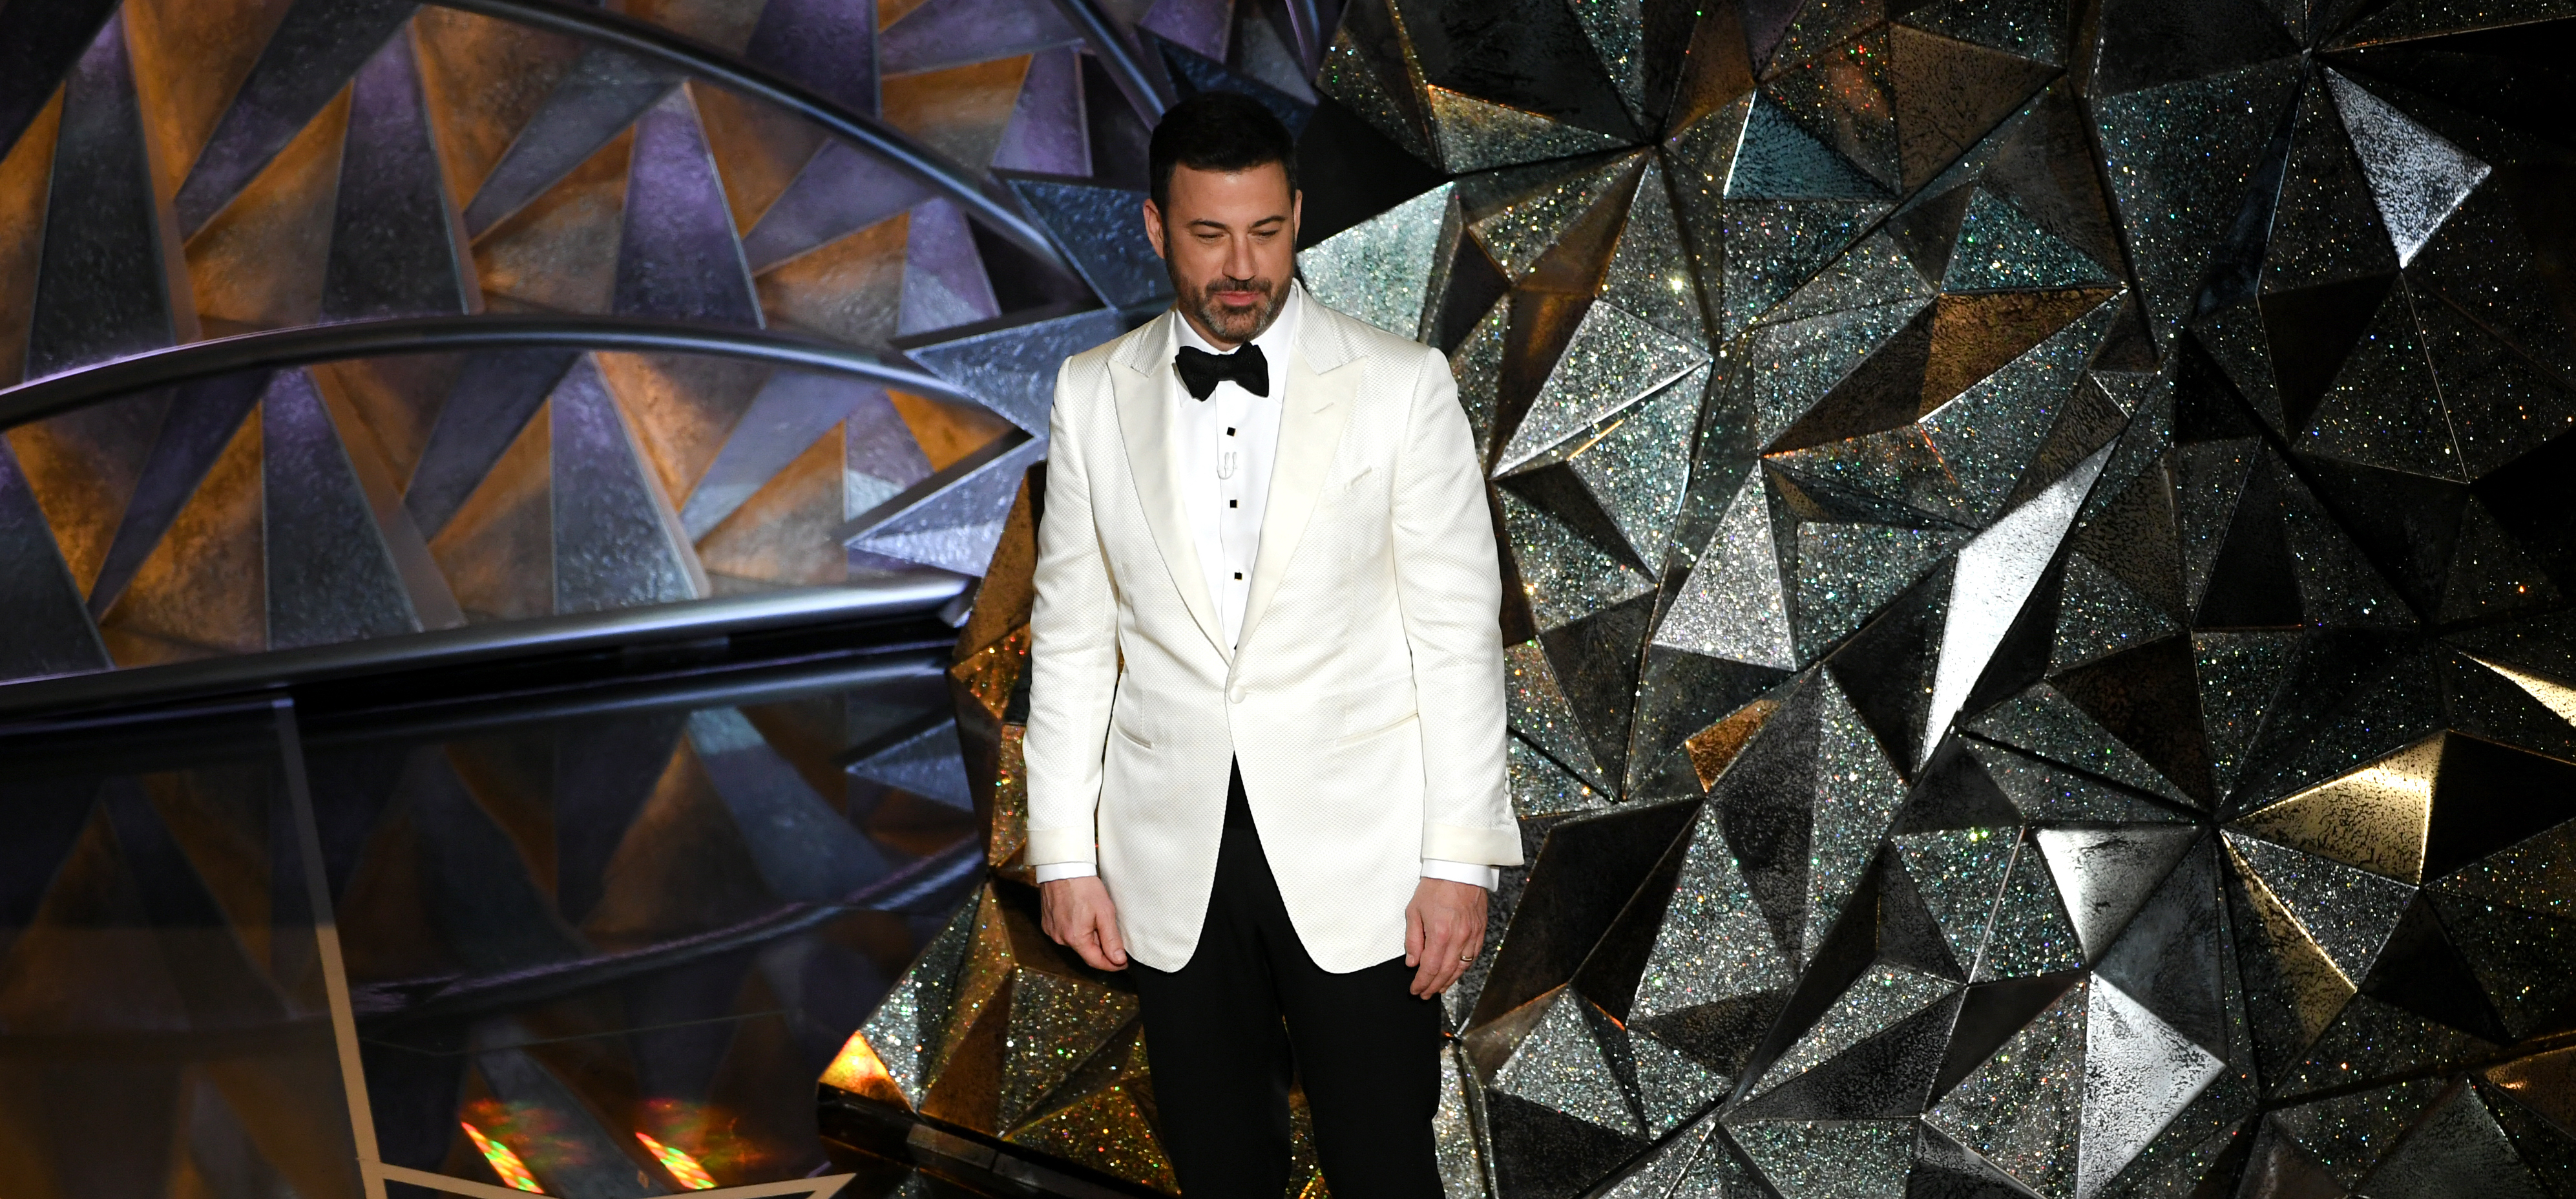 HOLLYWOOD, CA - MARCH 04: Host Jimmy Kimmel says goodnight onstage during the 90th Annual Academy Awards at the Dolby Theatre at Hollywood & Highland Center on March 4, 2018 in Hollywood, California. (Photo by Kevin Winter/Getty Images)